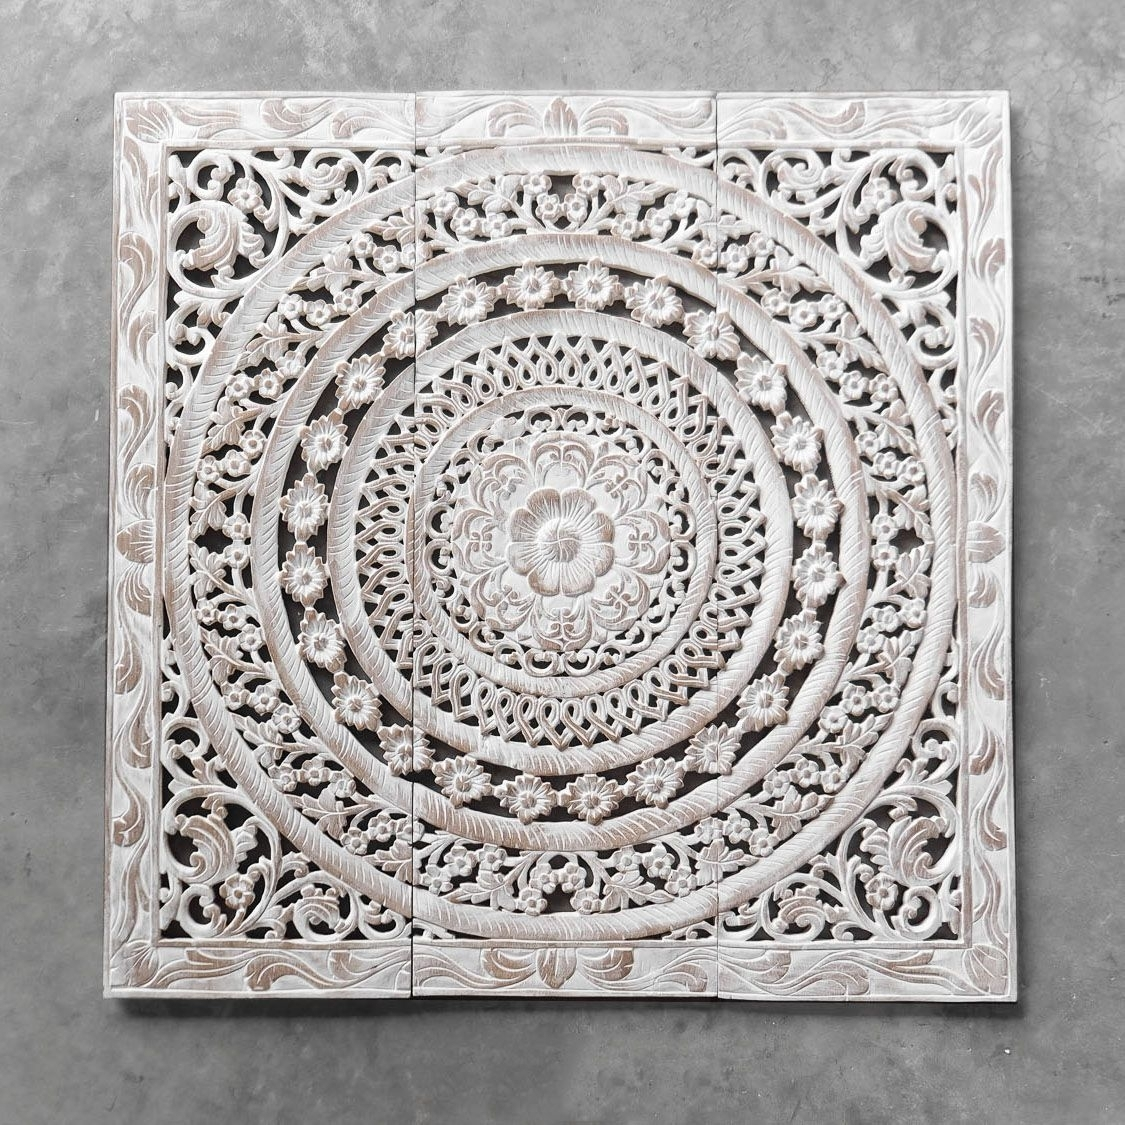 Wood Carved Wall Art Moroccan Decent Wood Carving Wall Art Hanging With Regard To Newest Wood Carved Wall Art (Gallery 2 of 20)